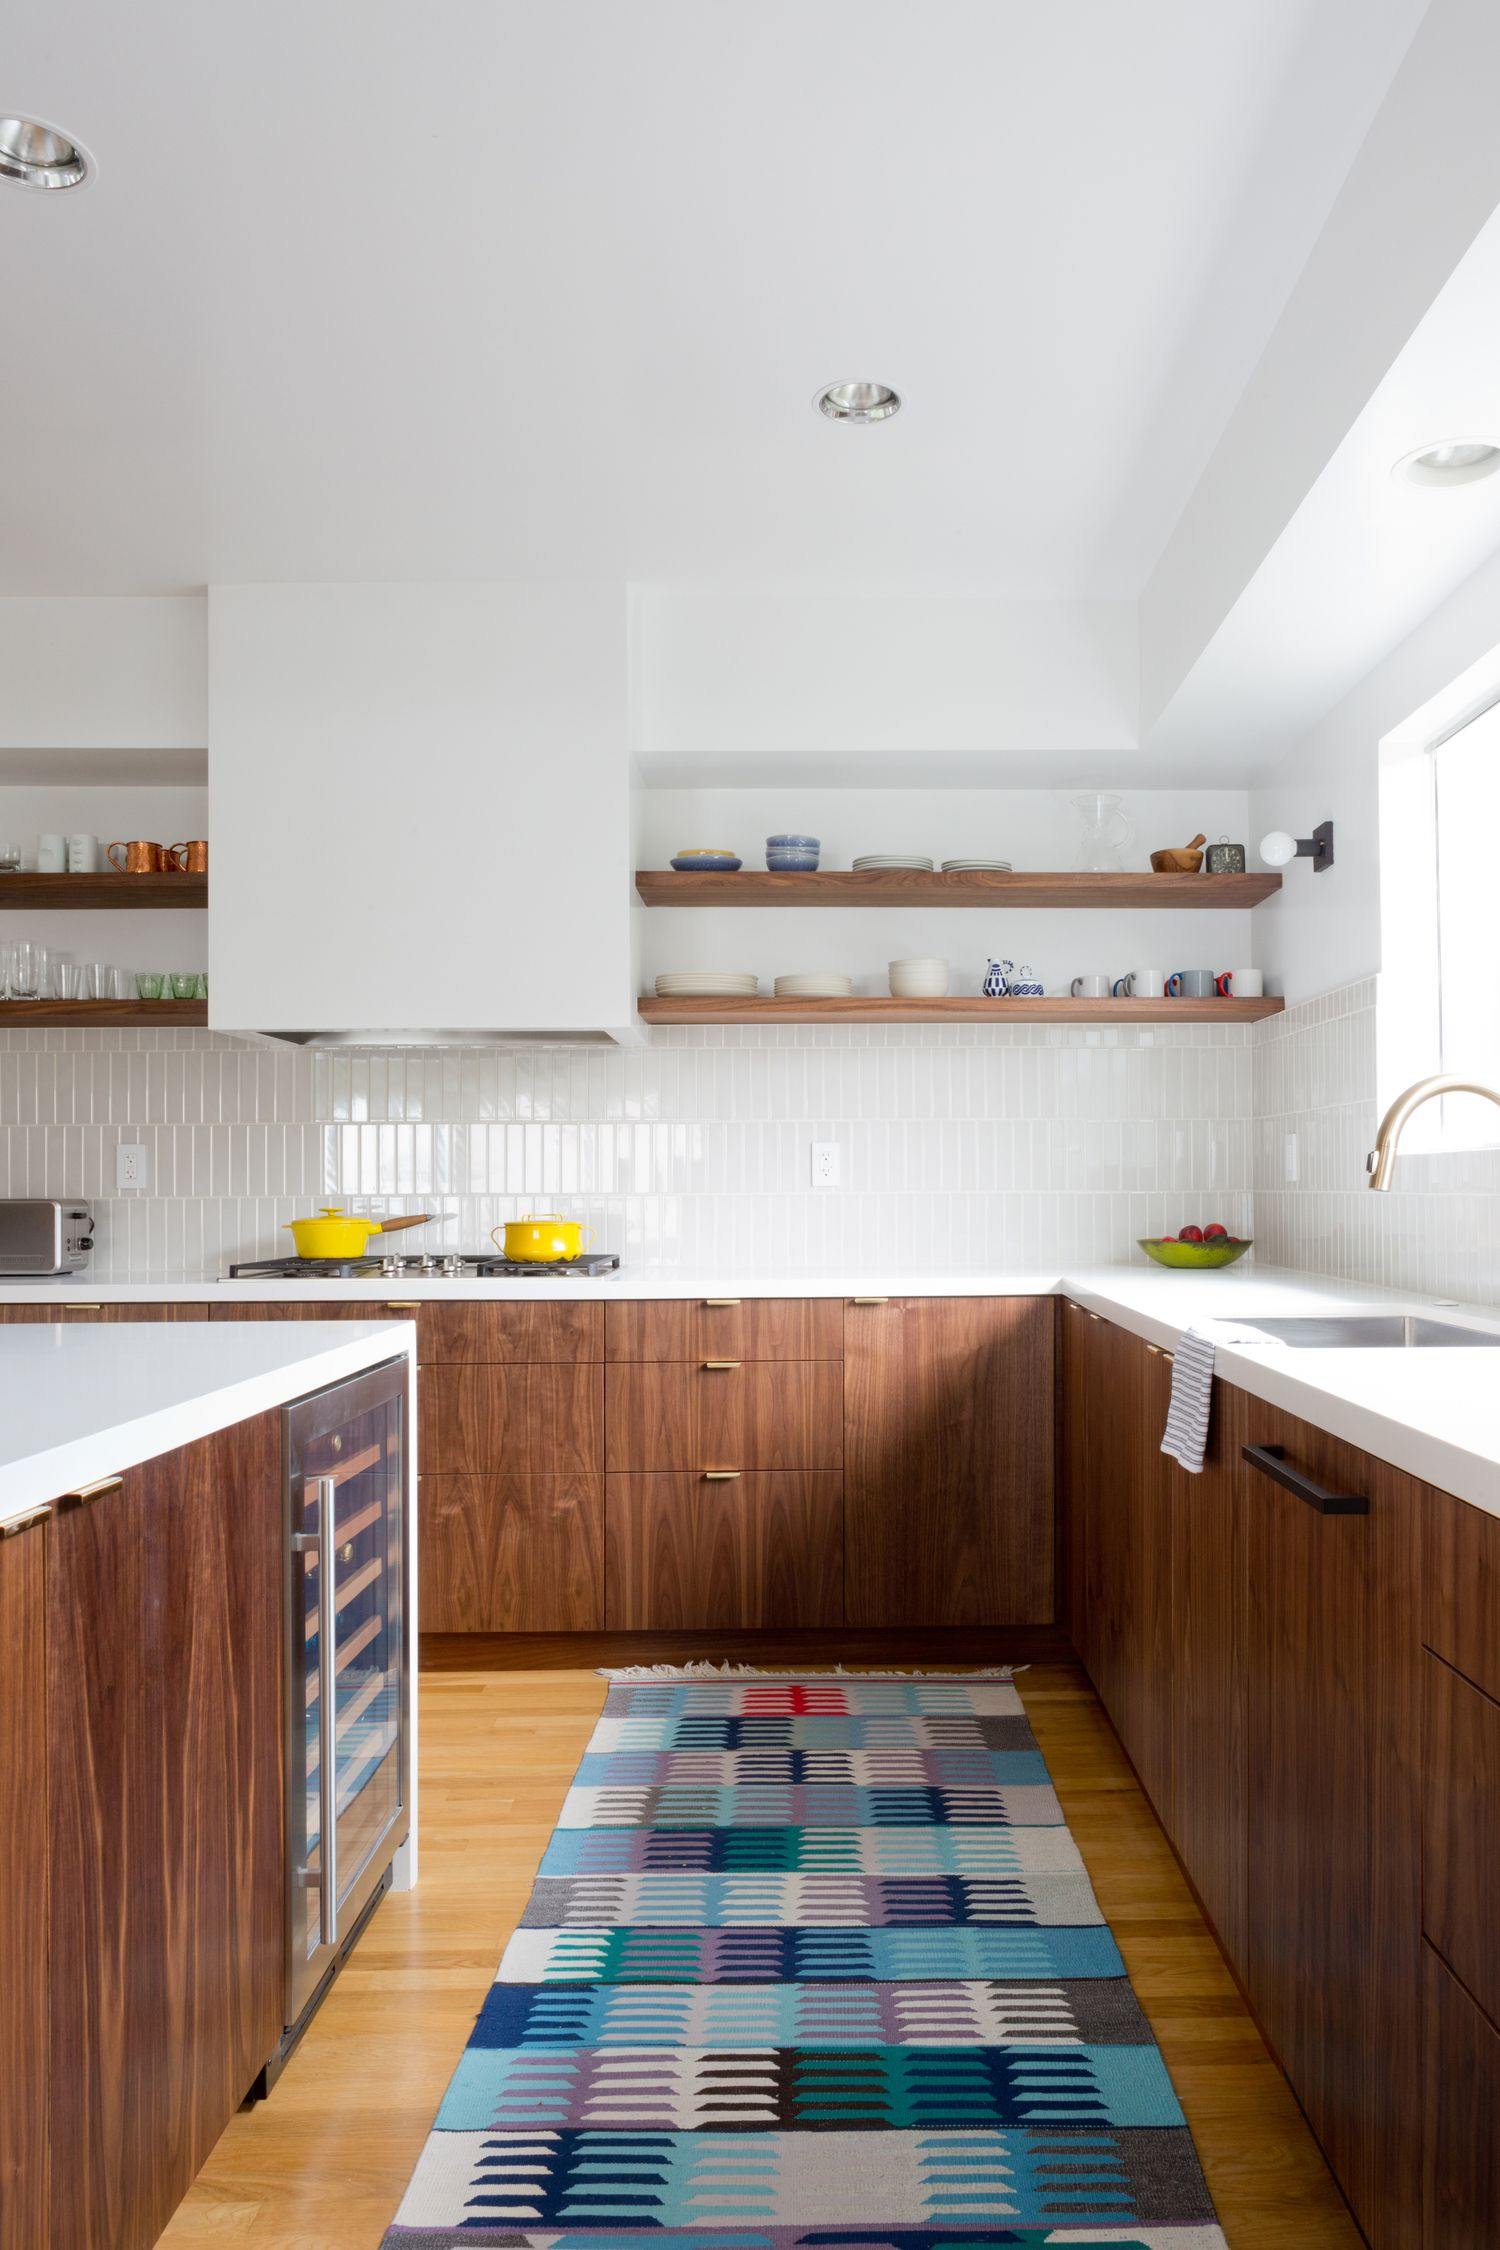 Gorgeous Walnut Kitchen Design With Midcentury Modern Feel   Love The  Narrow Rectangle Tiles Installed Veritcally, The Walnut Open Shelving, The  Solid White ...